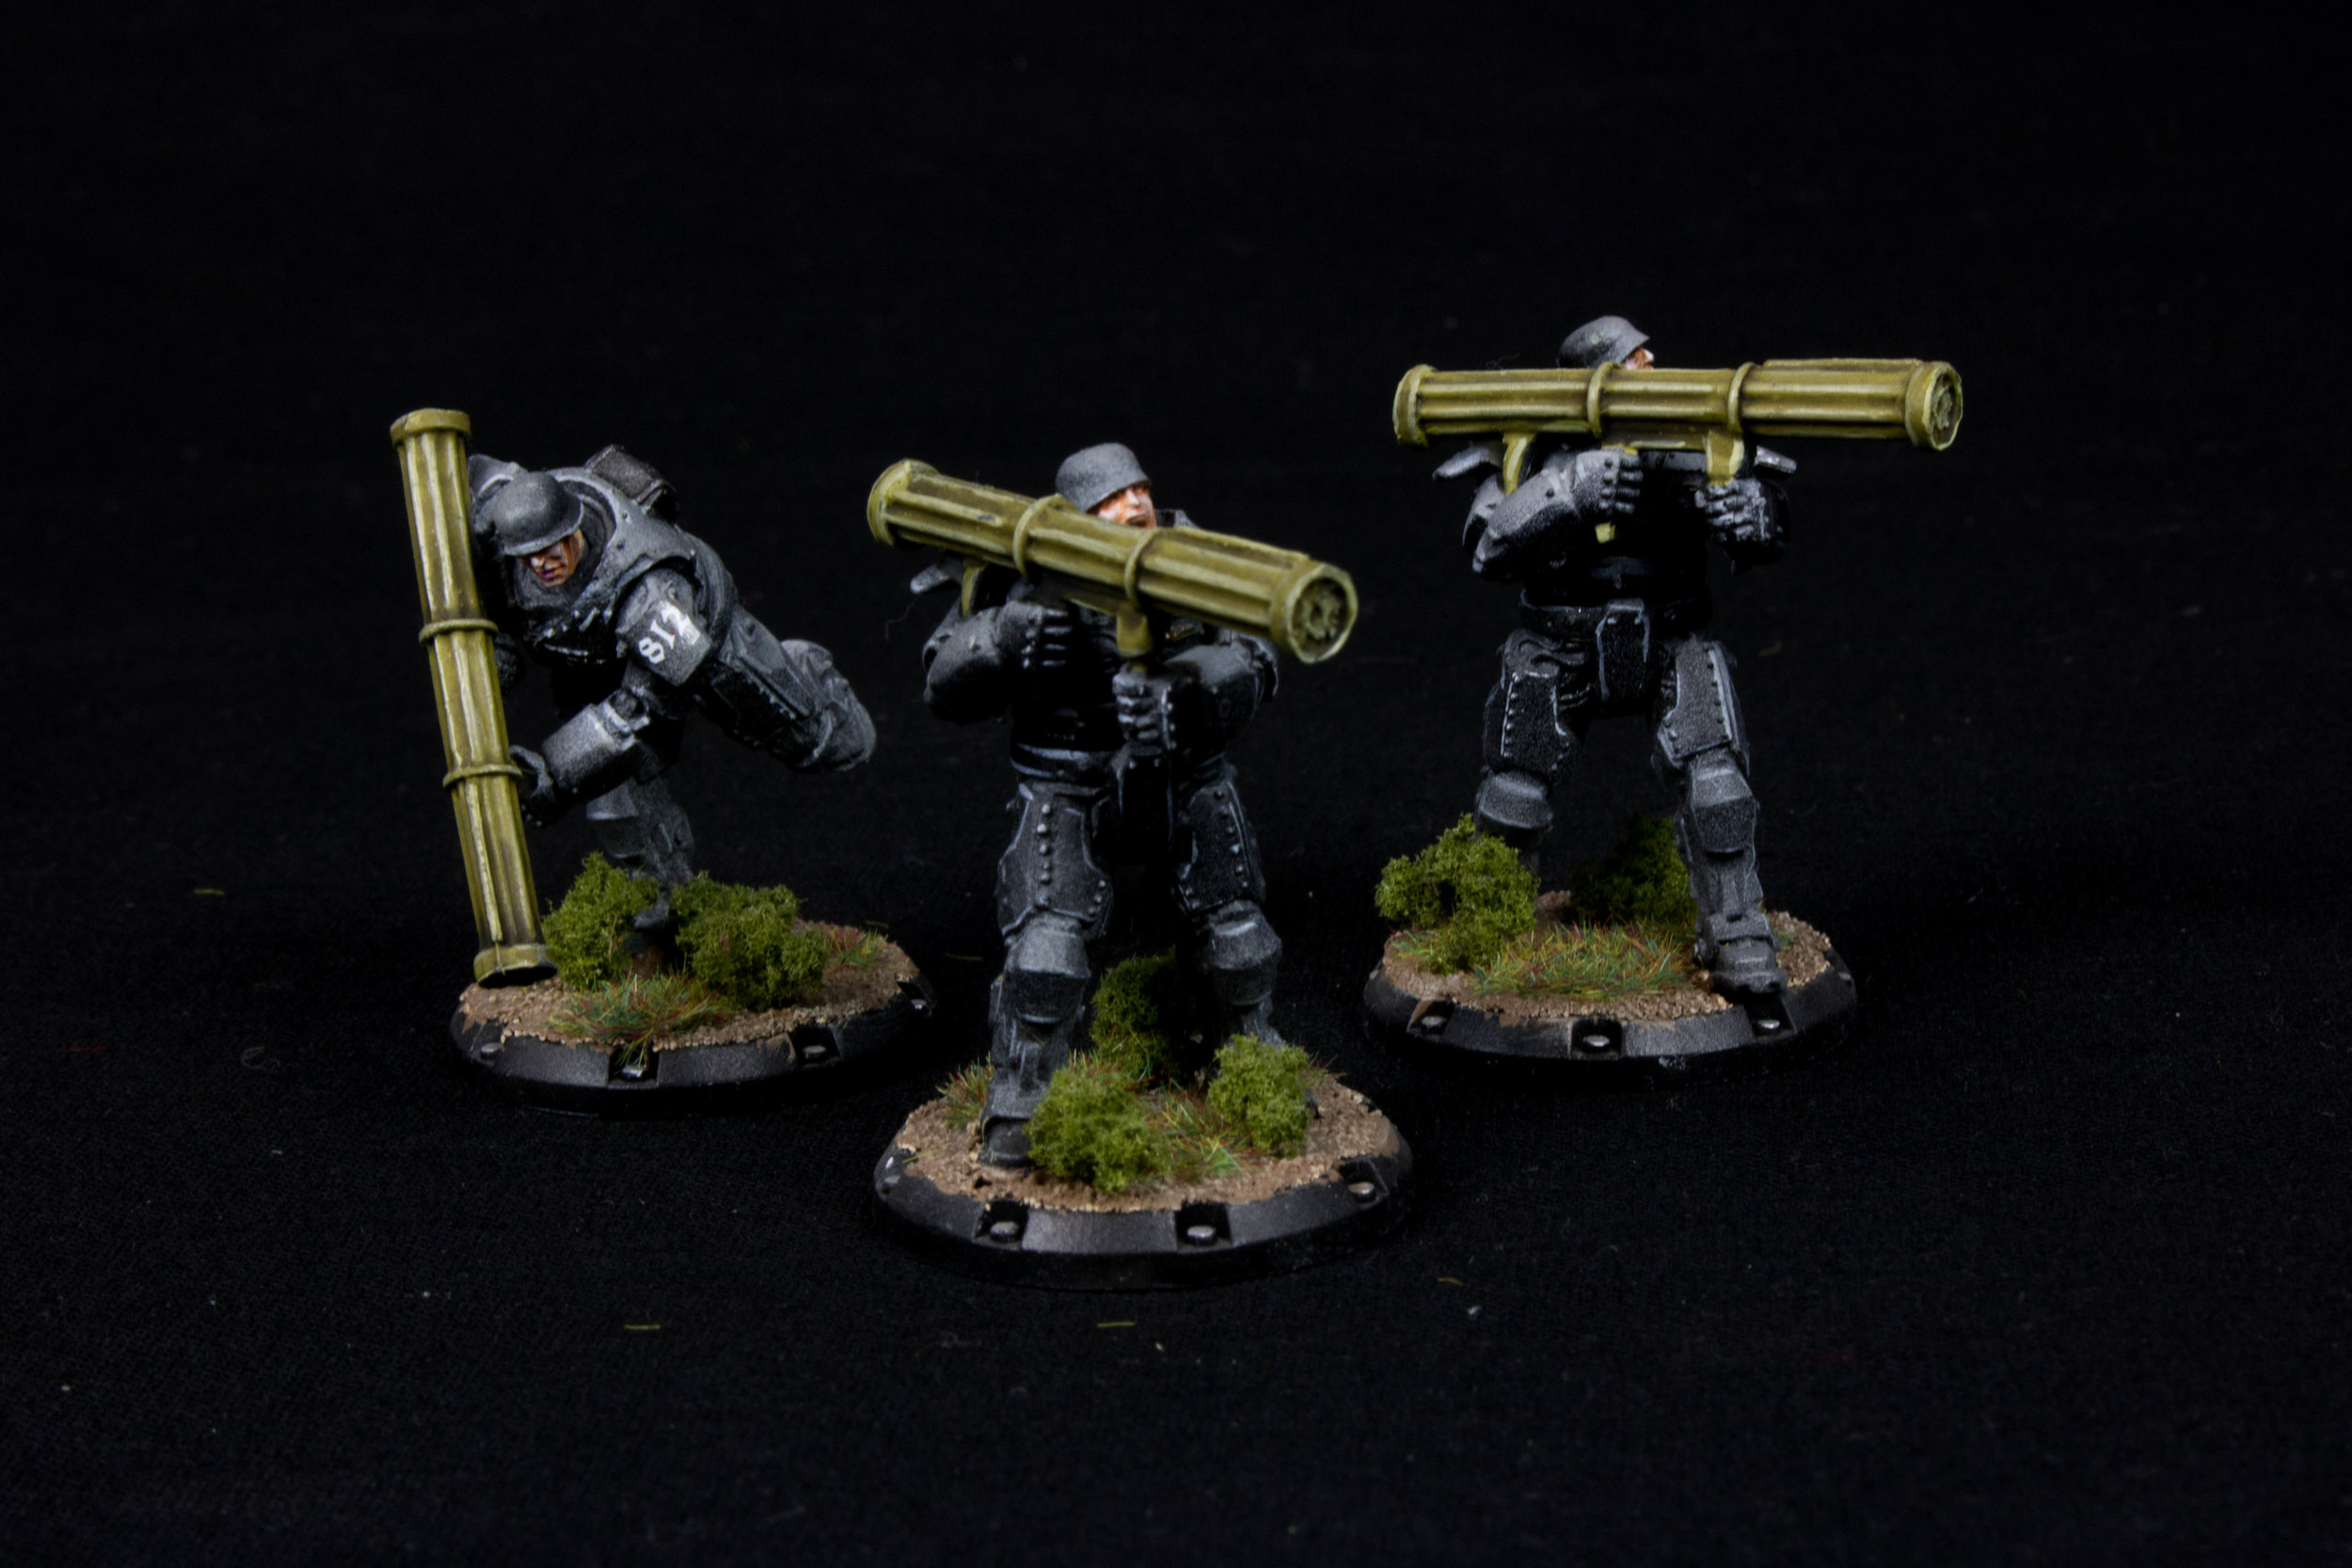 Dust Tactics WWII Warfare Germans Americans Axis Allies Bolt Action 28mm Alternate WWII-25.jpg